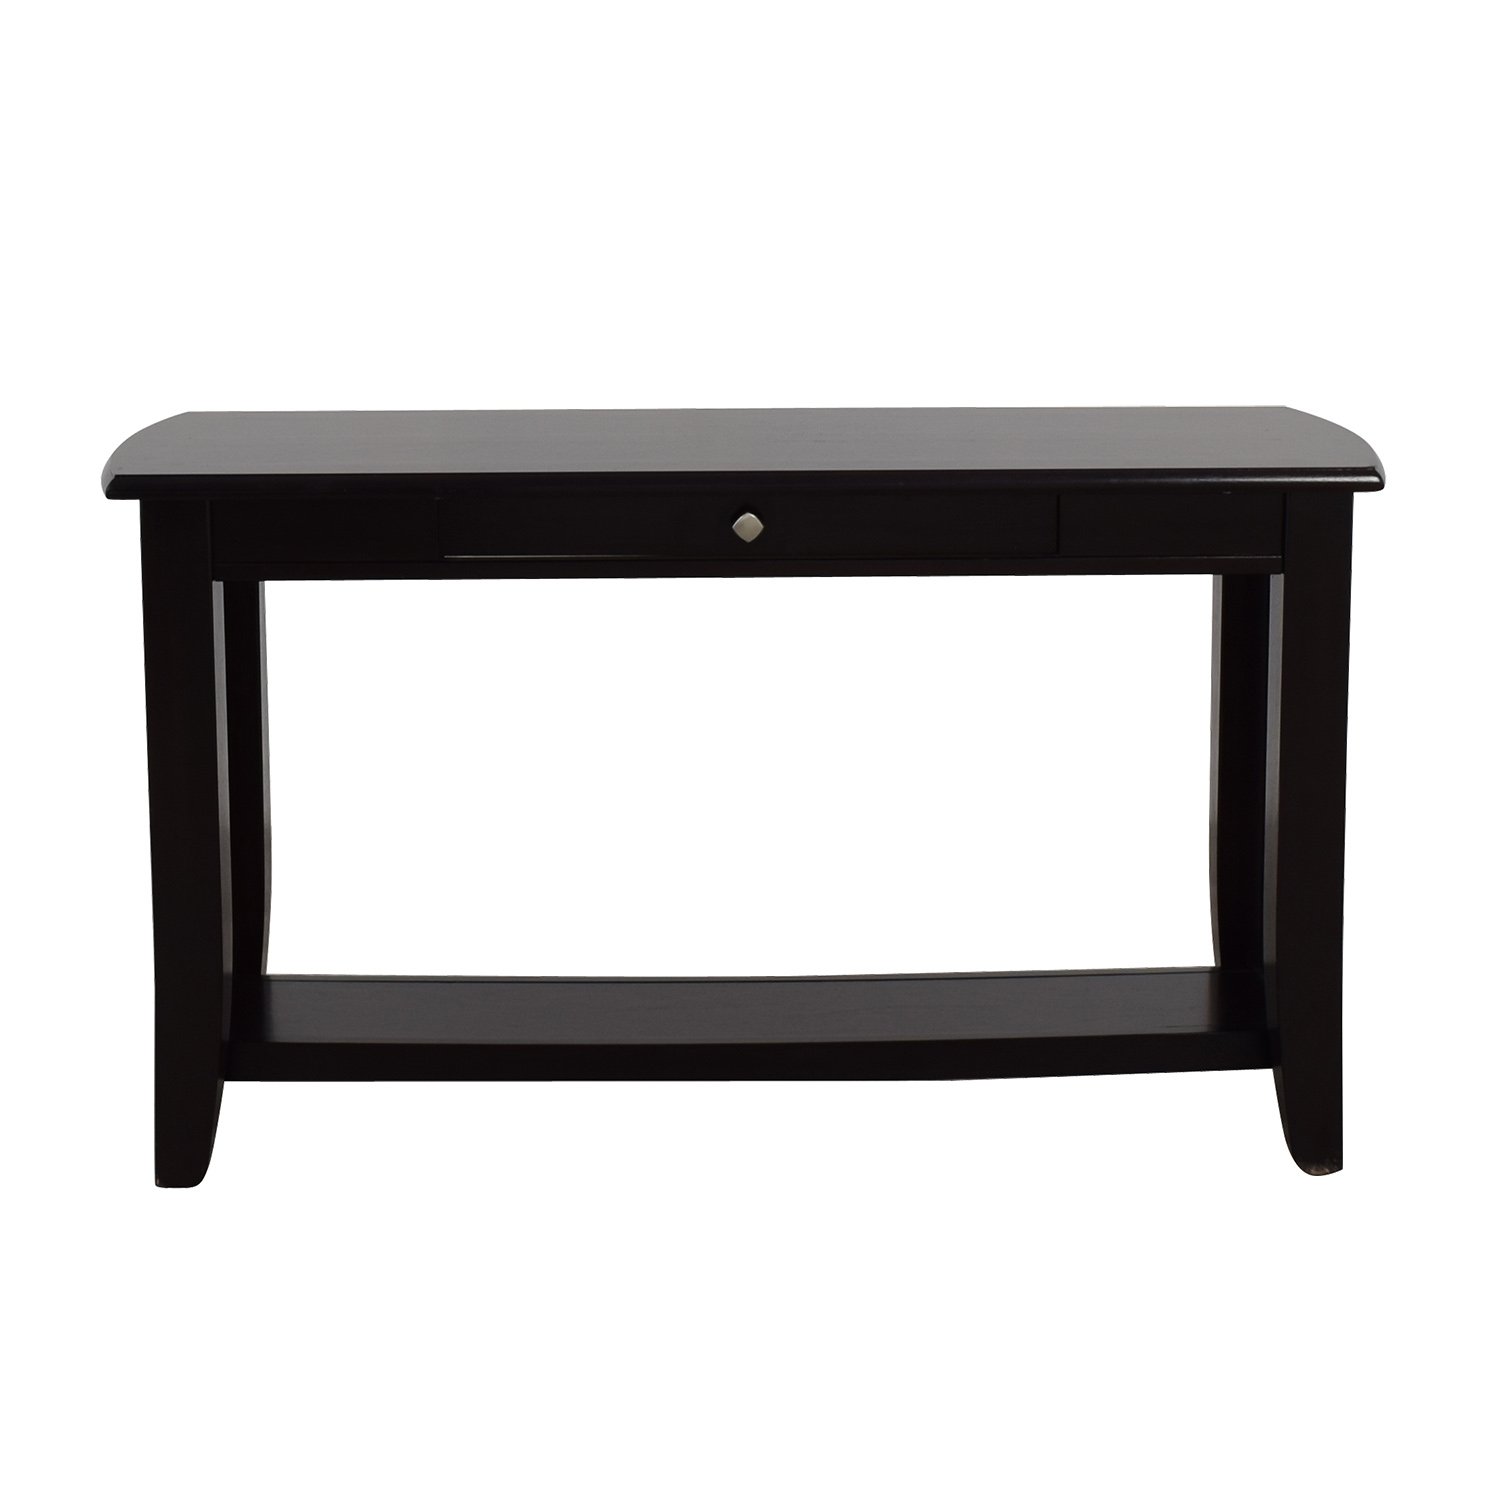 shop Raymour & Flanigan Single Drawer Wood Console Table Raymour & Flanigan Storage